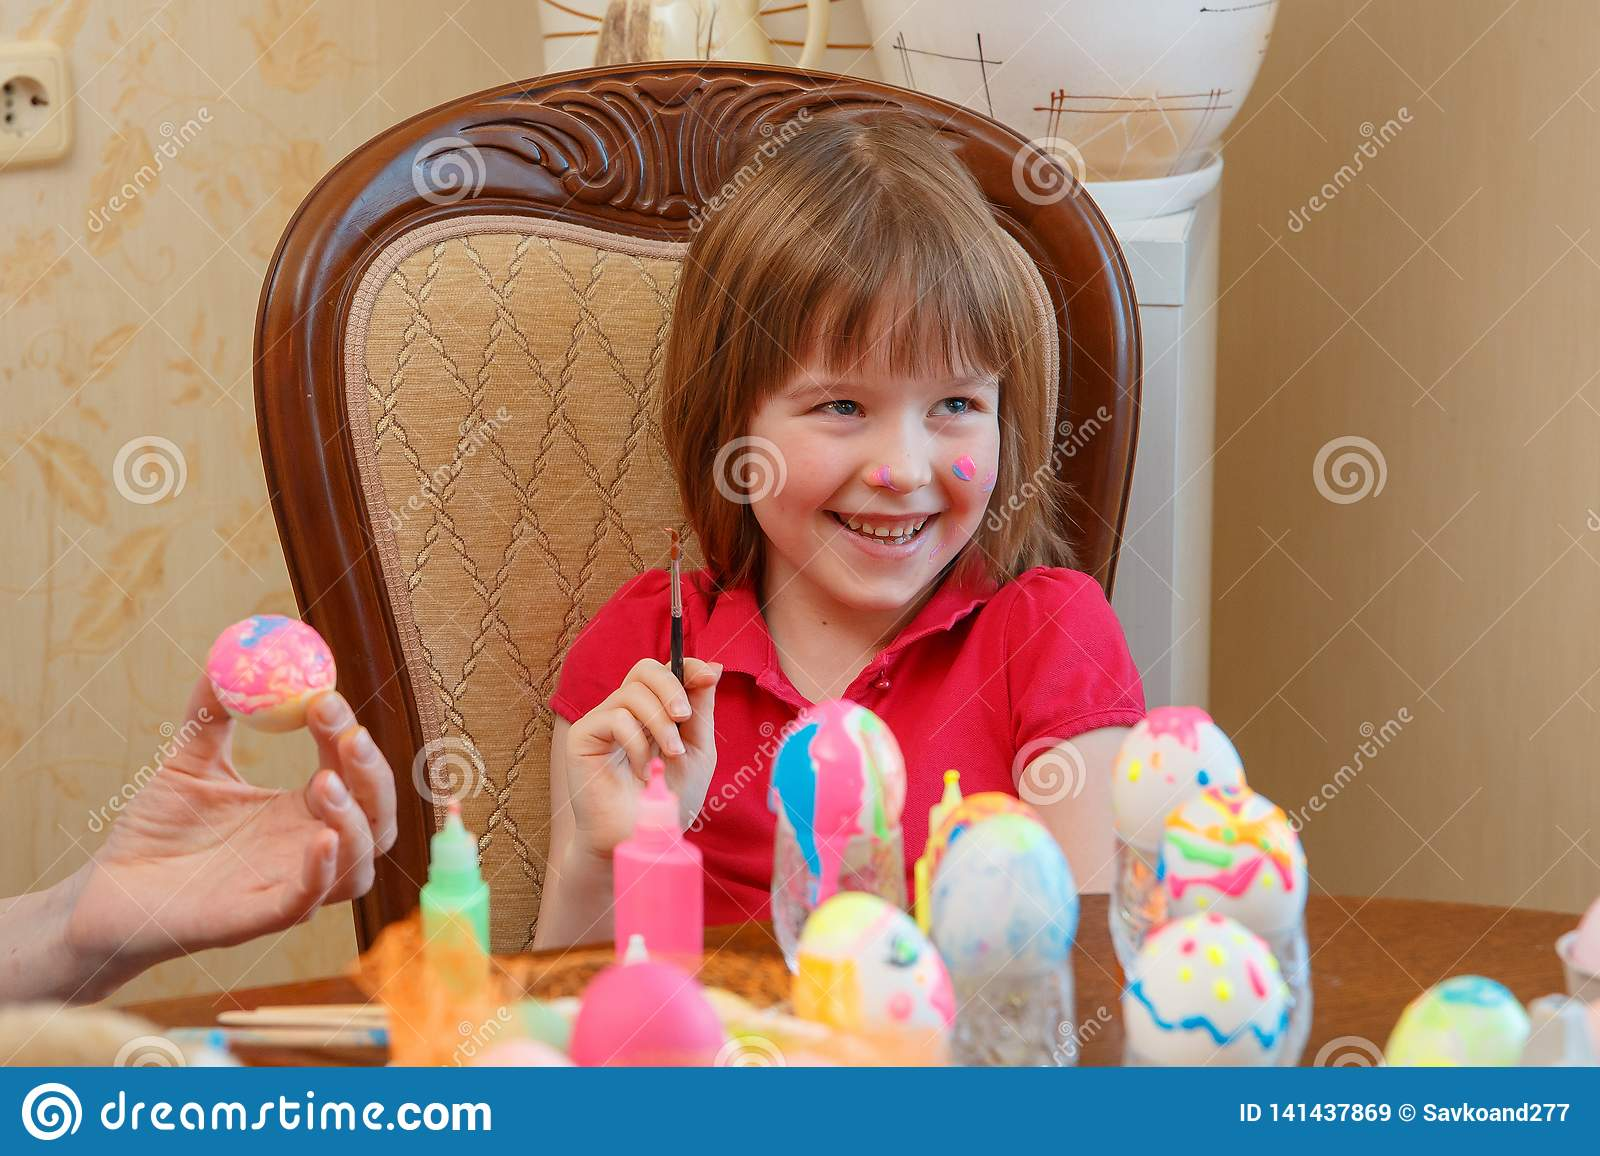 The girl is fun painting eggs for Easter